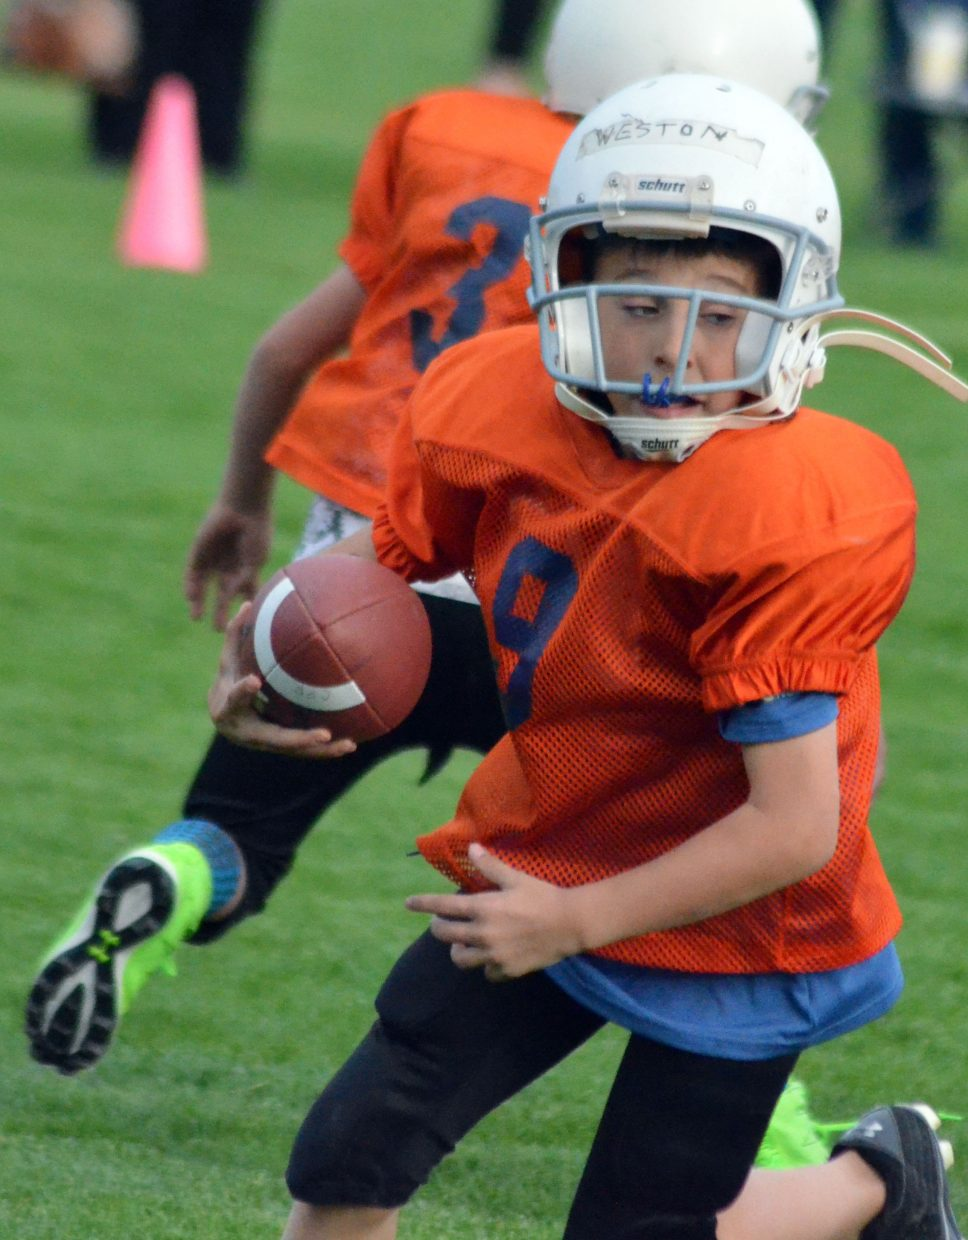 The Broncos' Weston Swaro keeps the ball following a fake handoff during a Doak Walker third- and fourth-grade game.